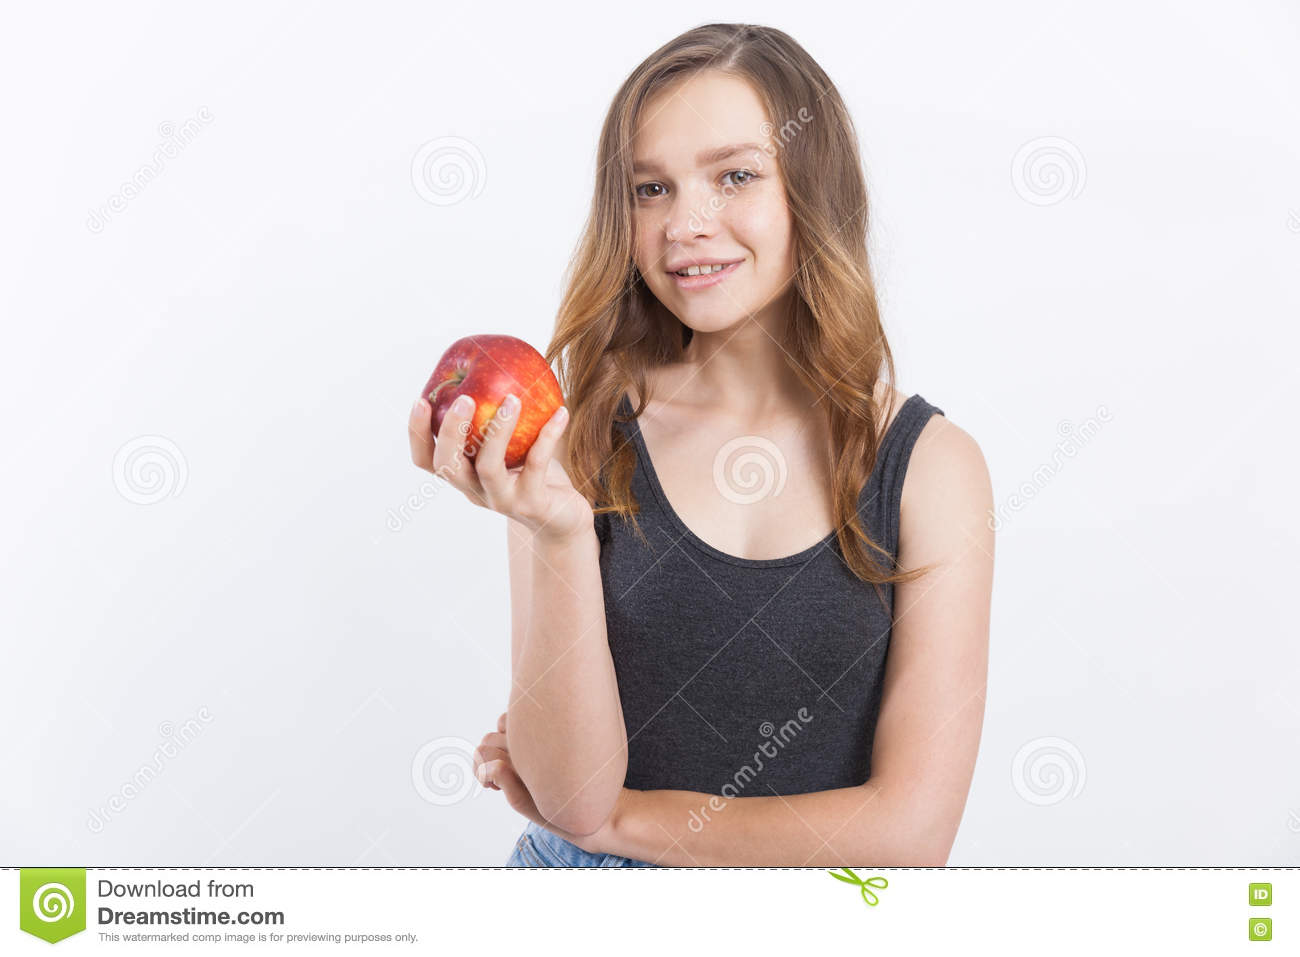 Girl In Jeans With Red Apple Stock Photo - Image: 75064850